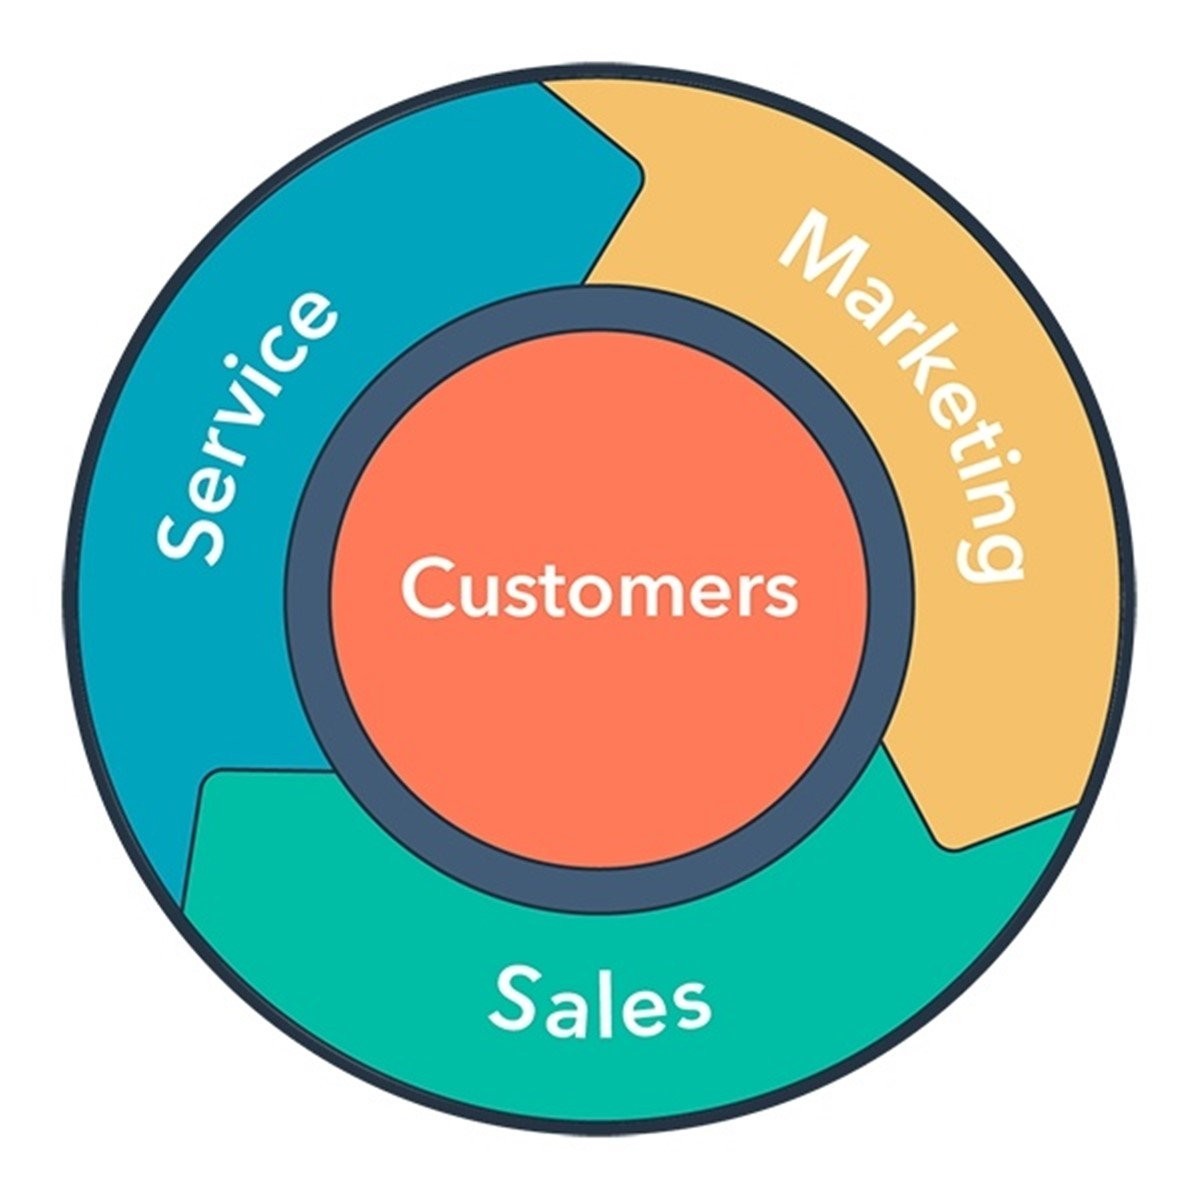 To start an online businesses, learn sales, marketing and customer service strategies